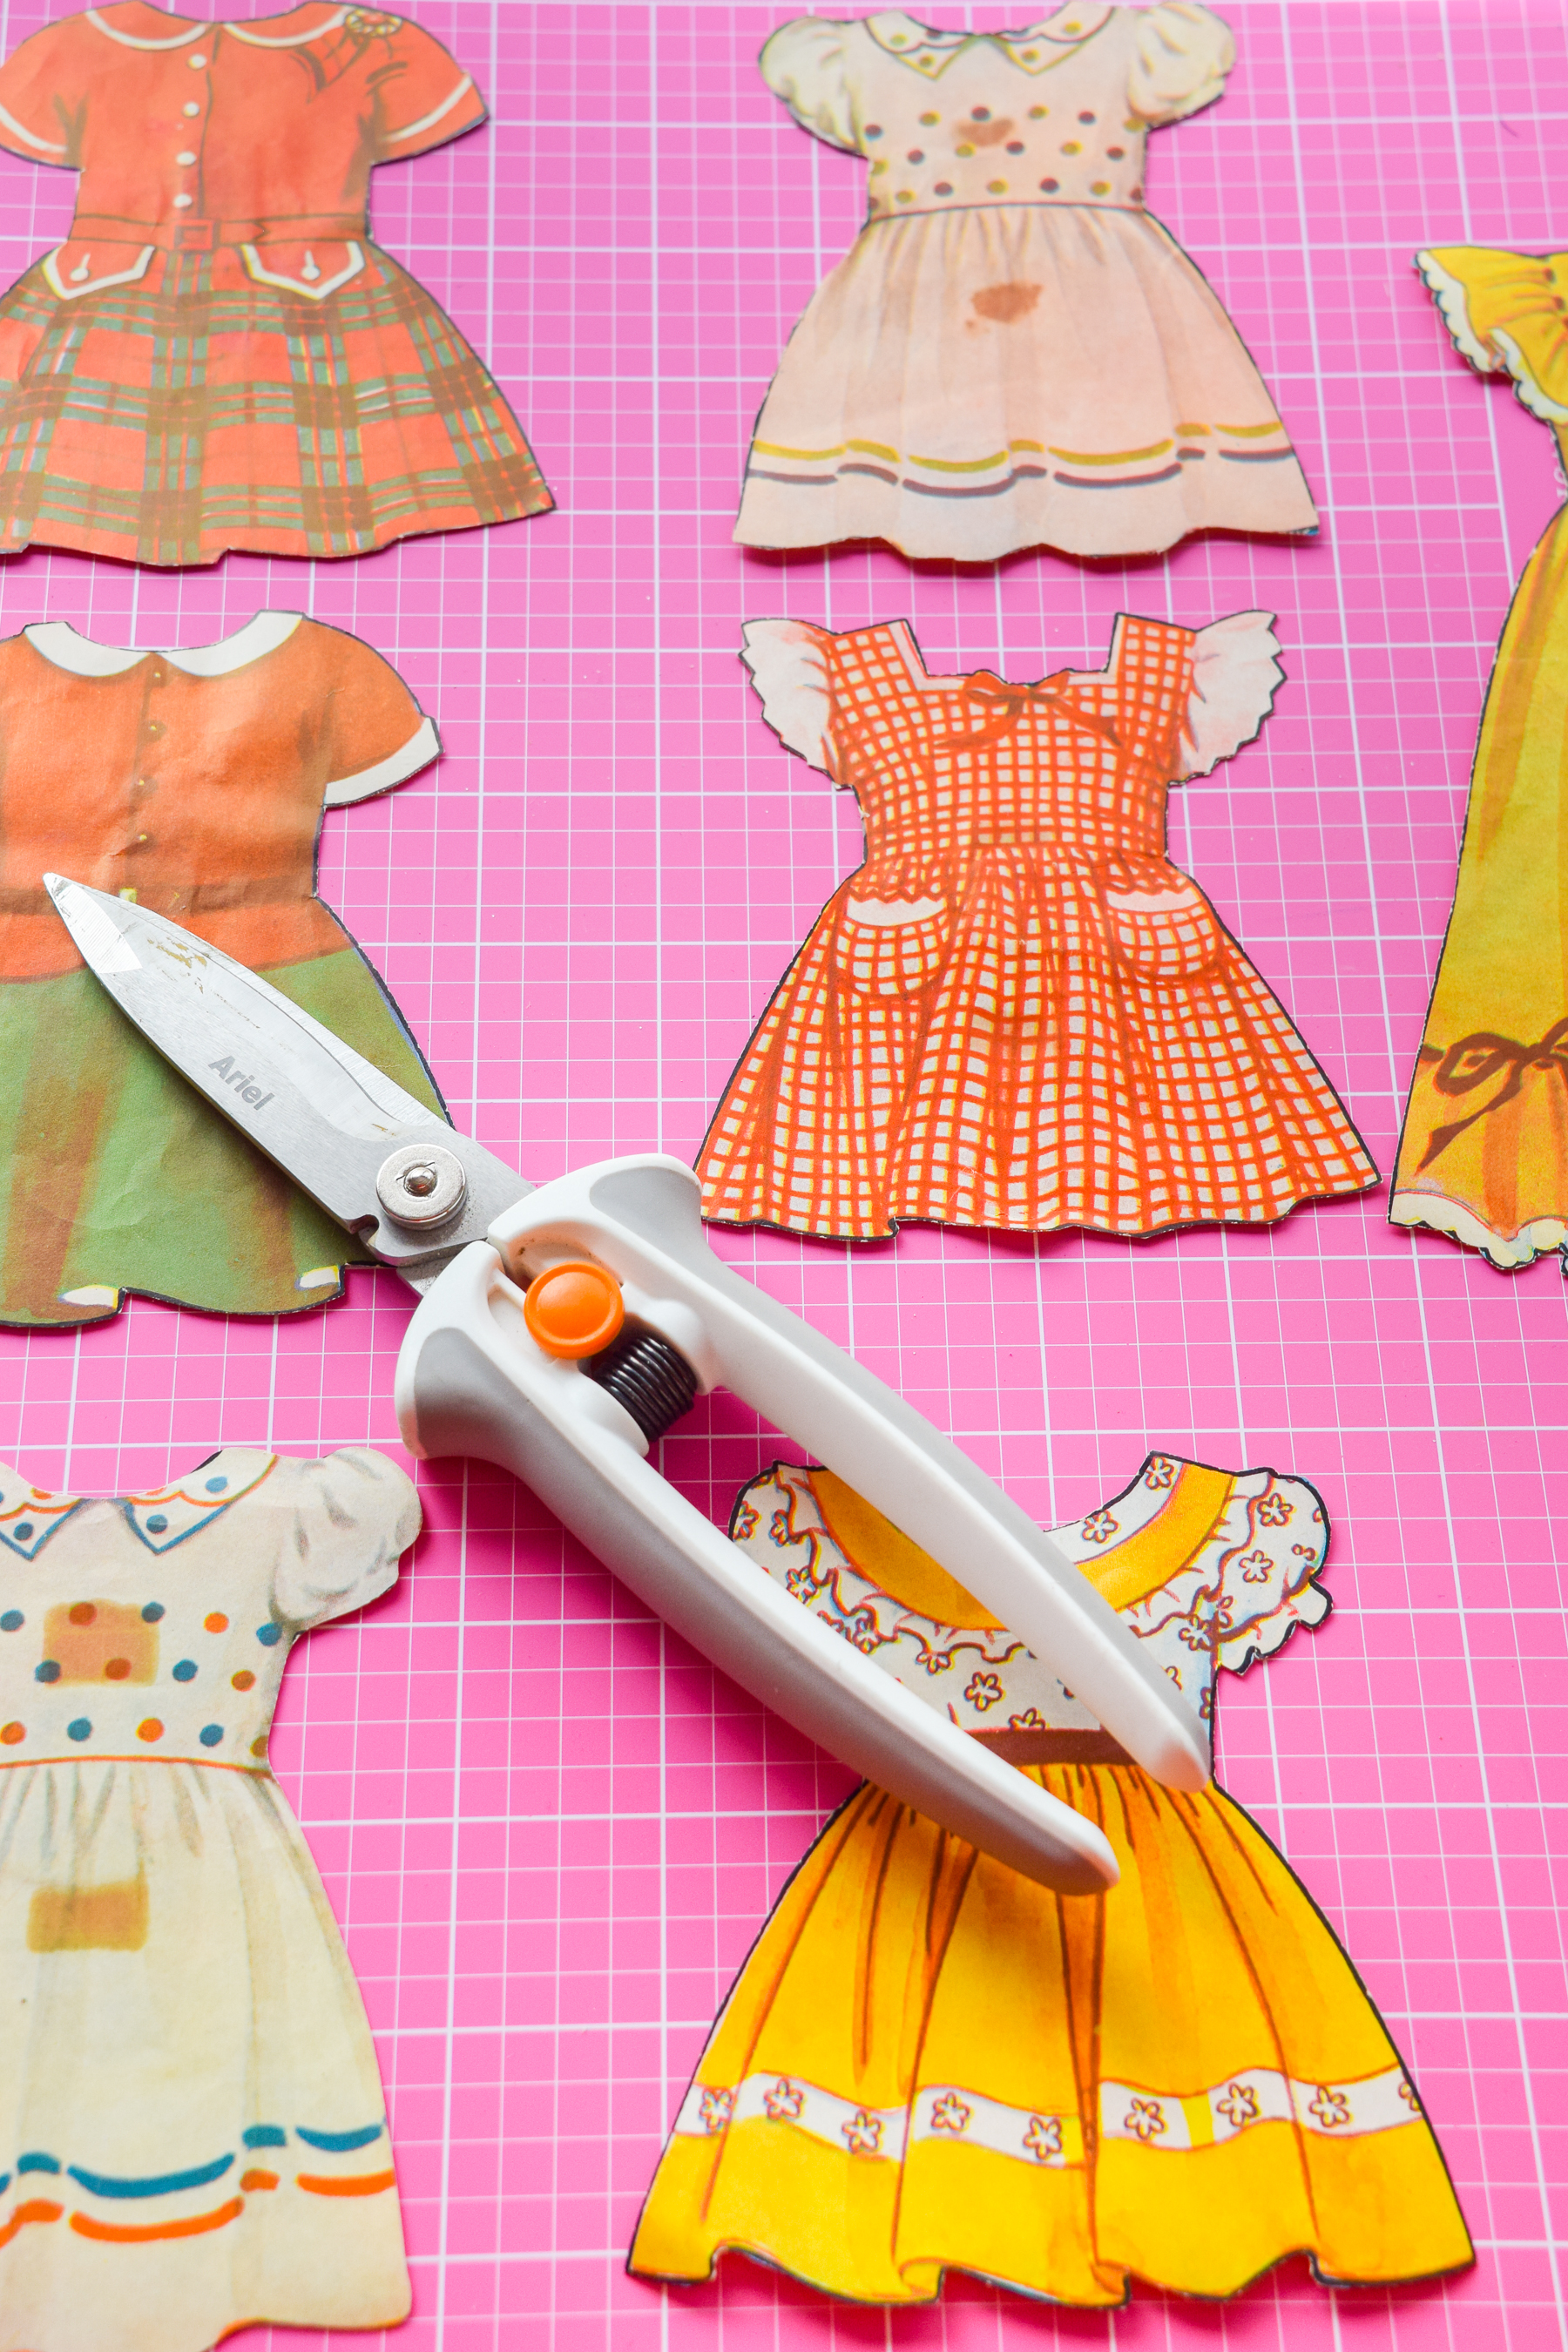 Got an old paper doll set? Add some magnetic sheeting them, and stick them to your fridge for a fun set of DIY retro doll fridge magnets.